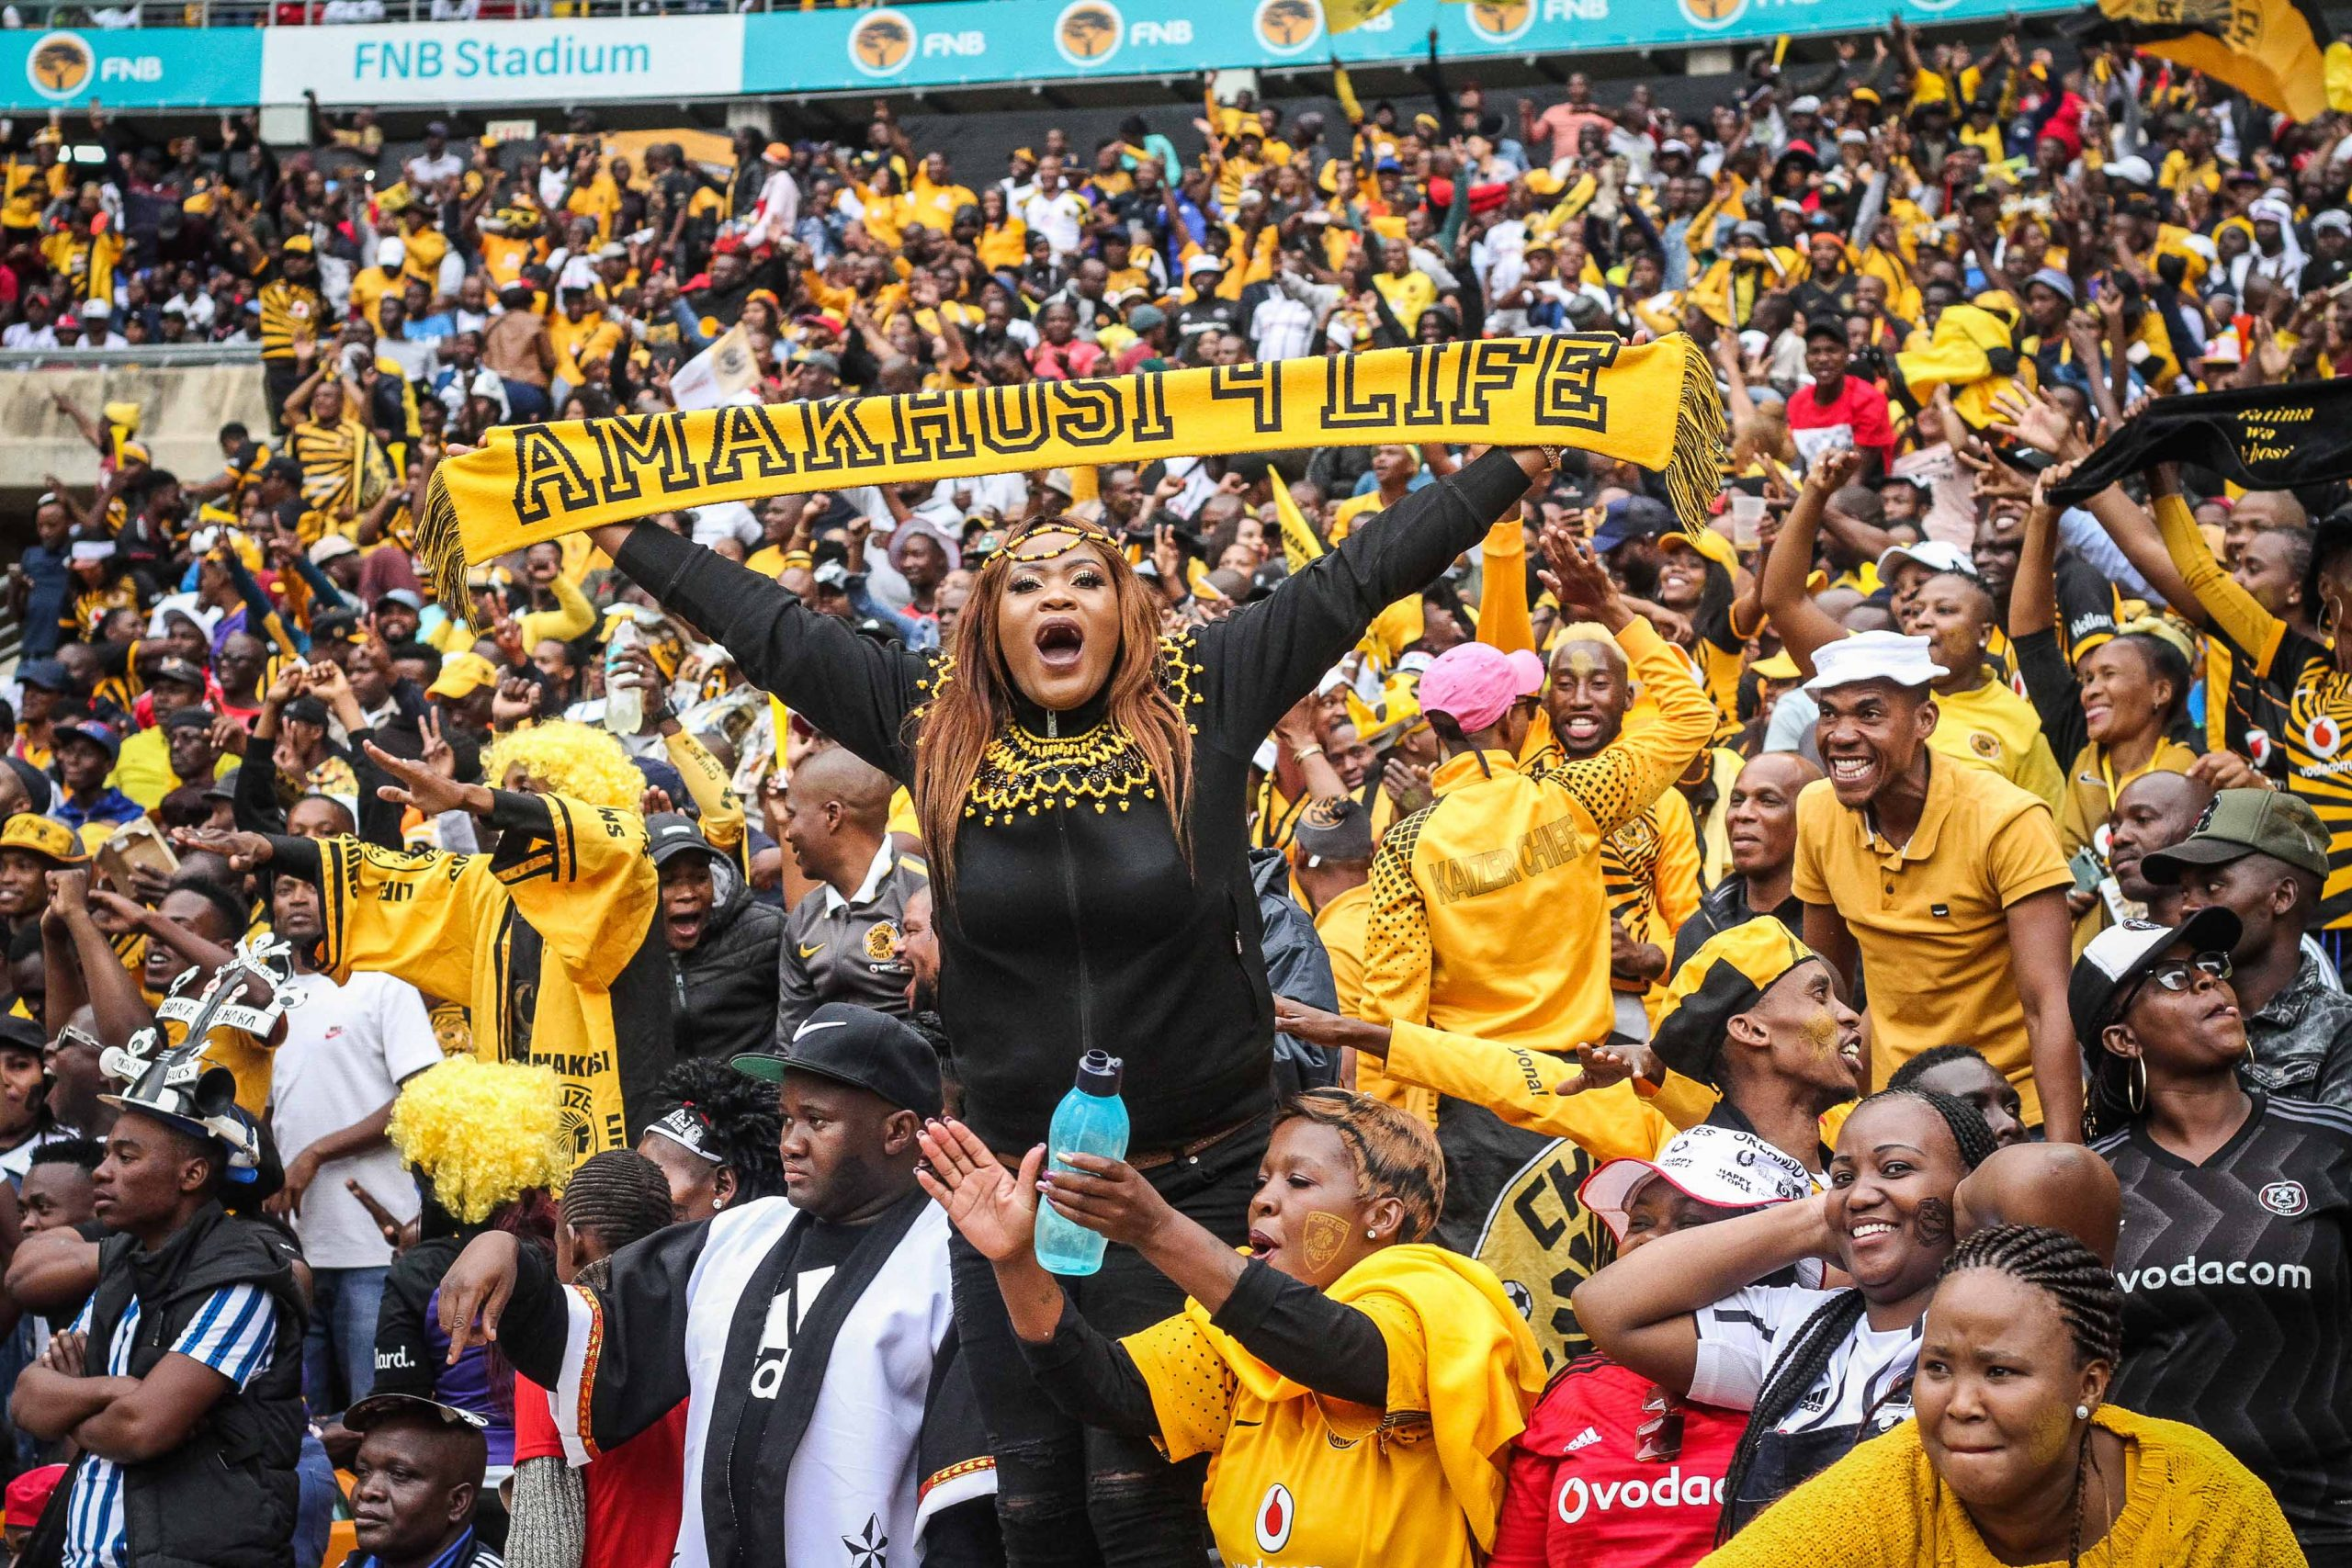 29 February 2020: Chiefs fans laud the single goal that won the match. (Photograph by Lebo Edgar)